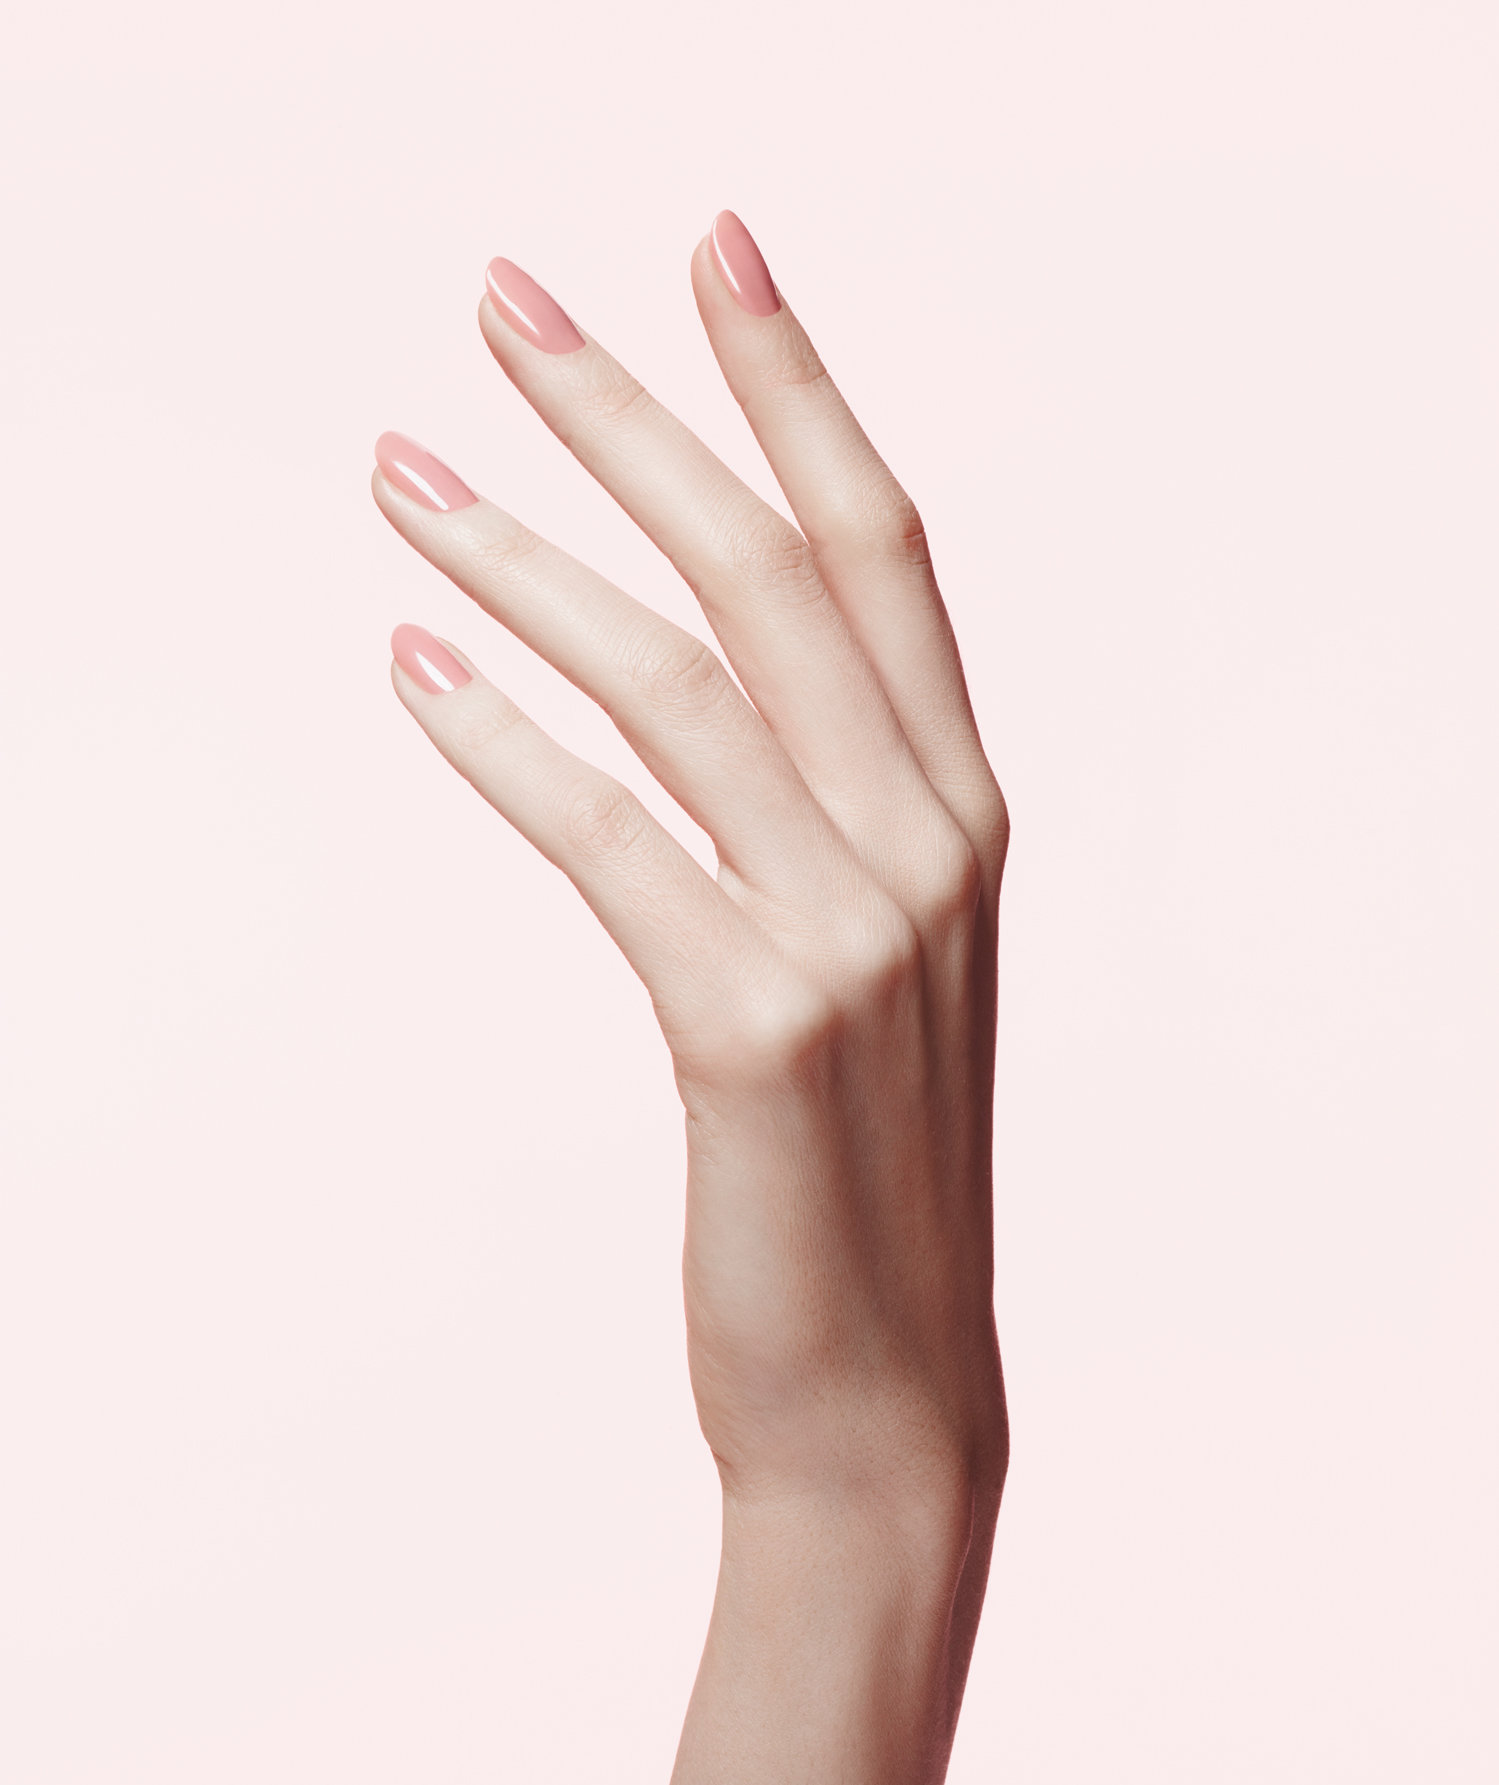 hand-manicure-pink-nails